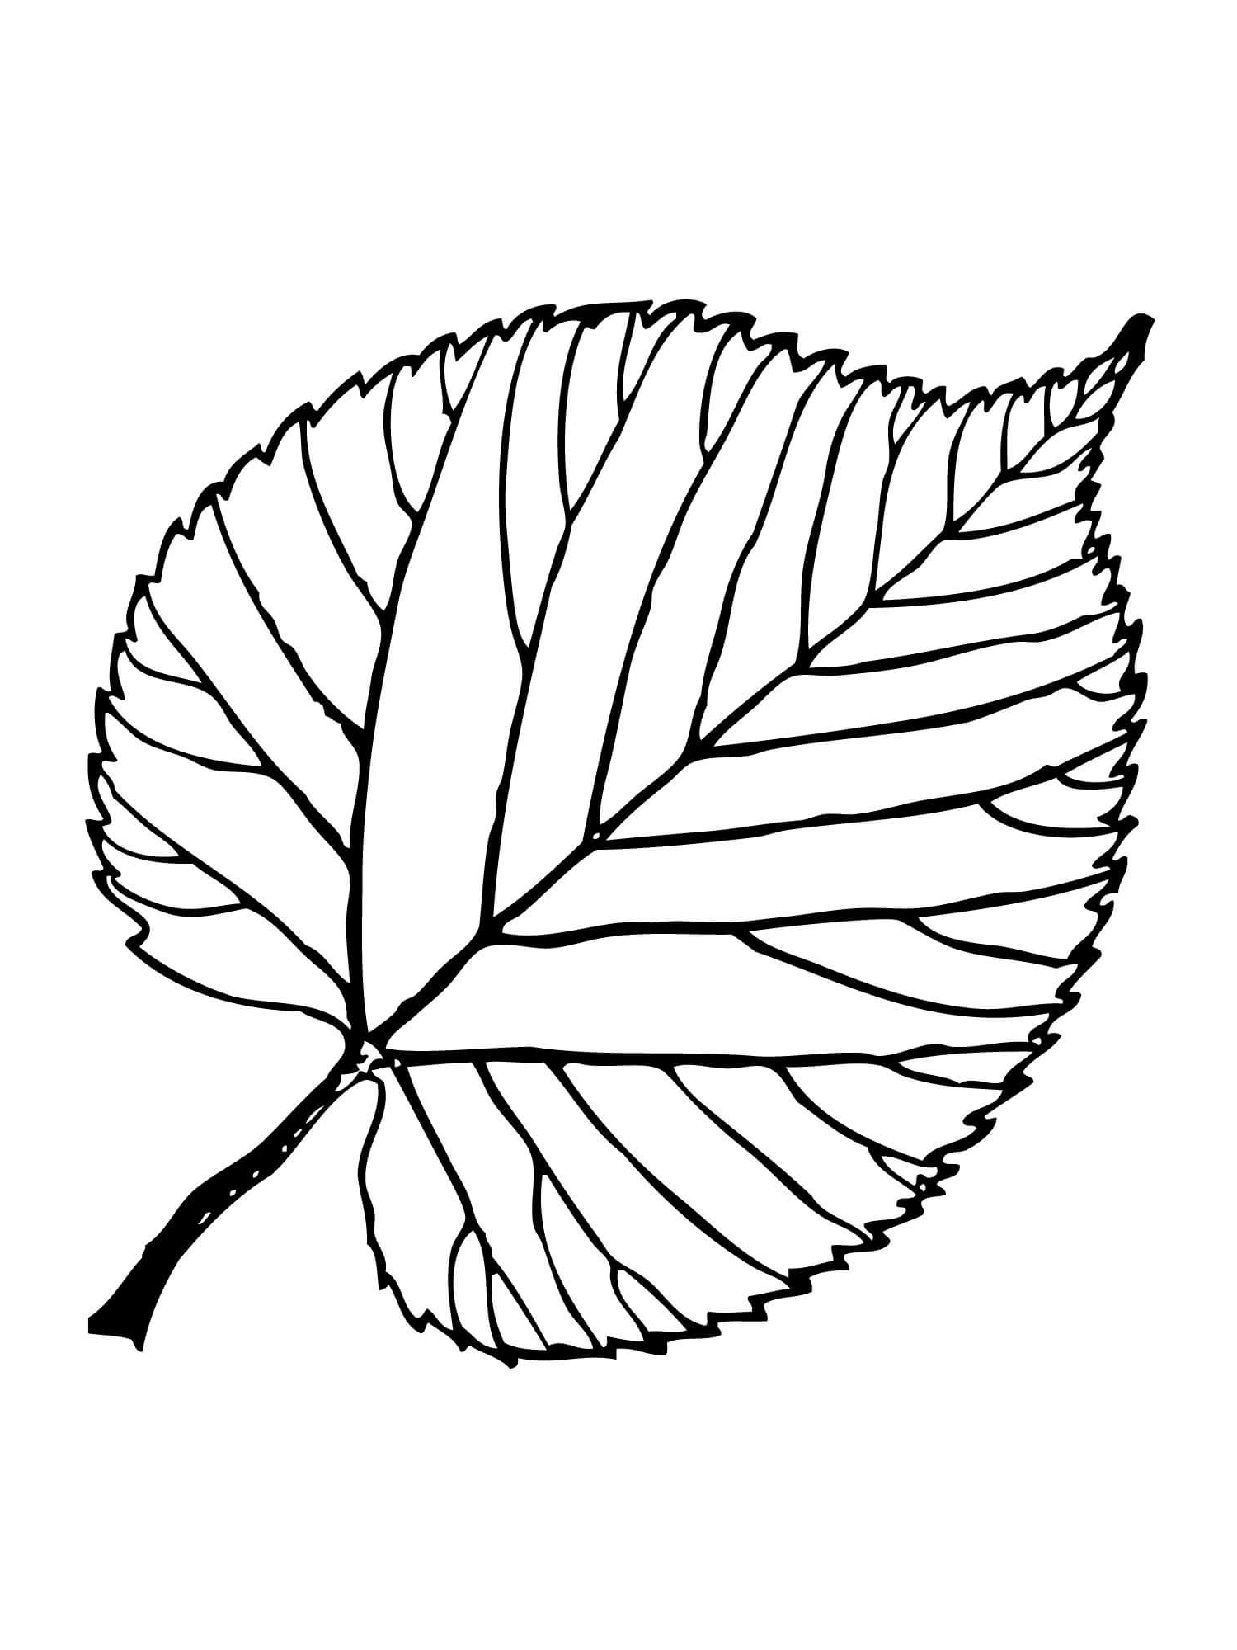 free printable leaf coloring pages - leaf coloring pages to print